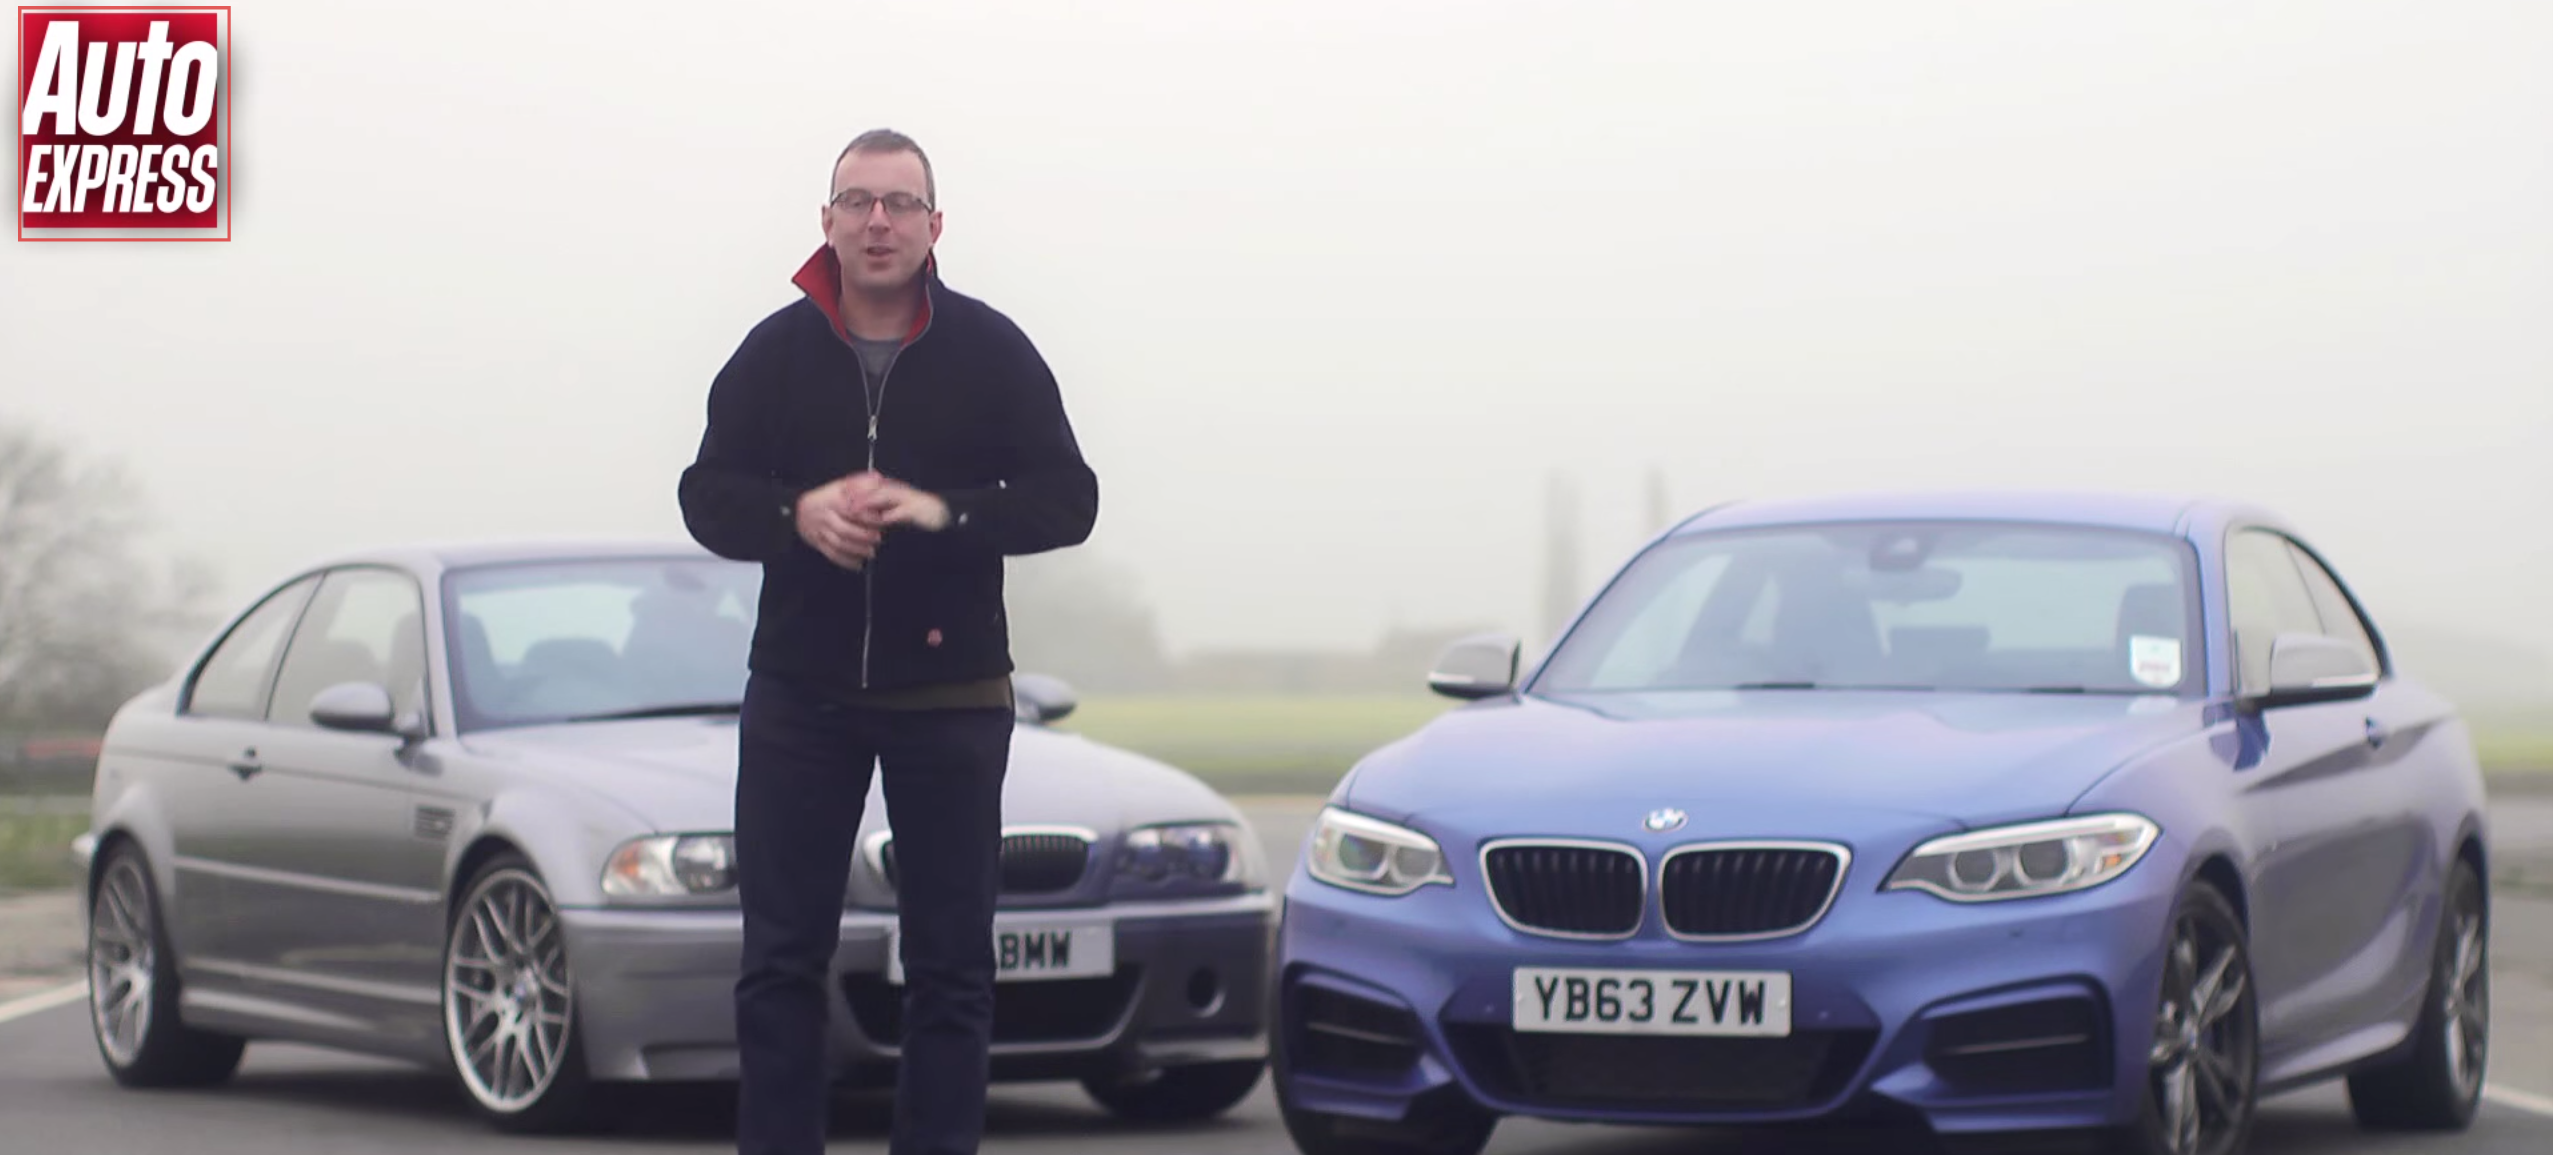 Watch The The Legendary BMW M3 CSL Battle The 2015 M235i